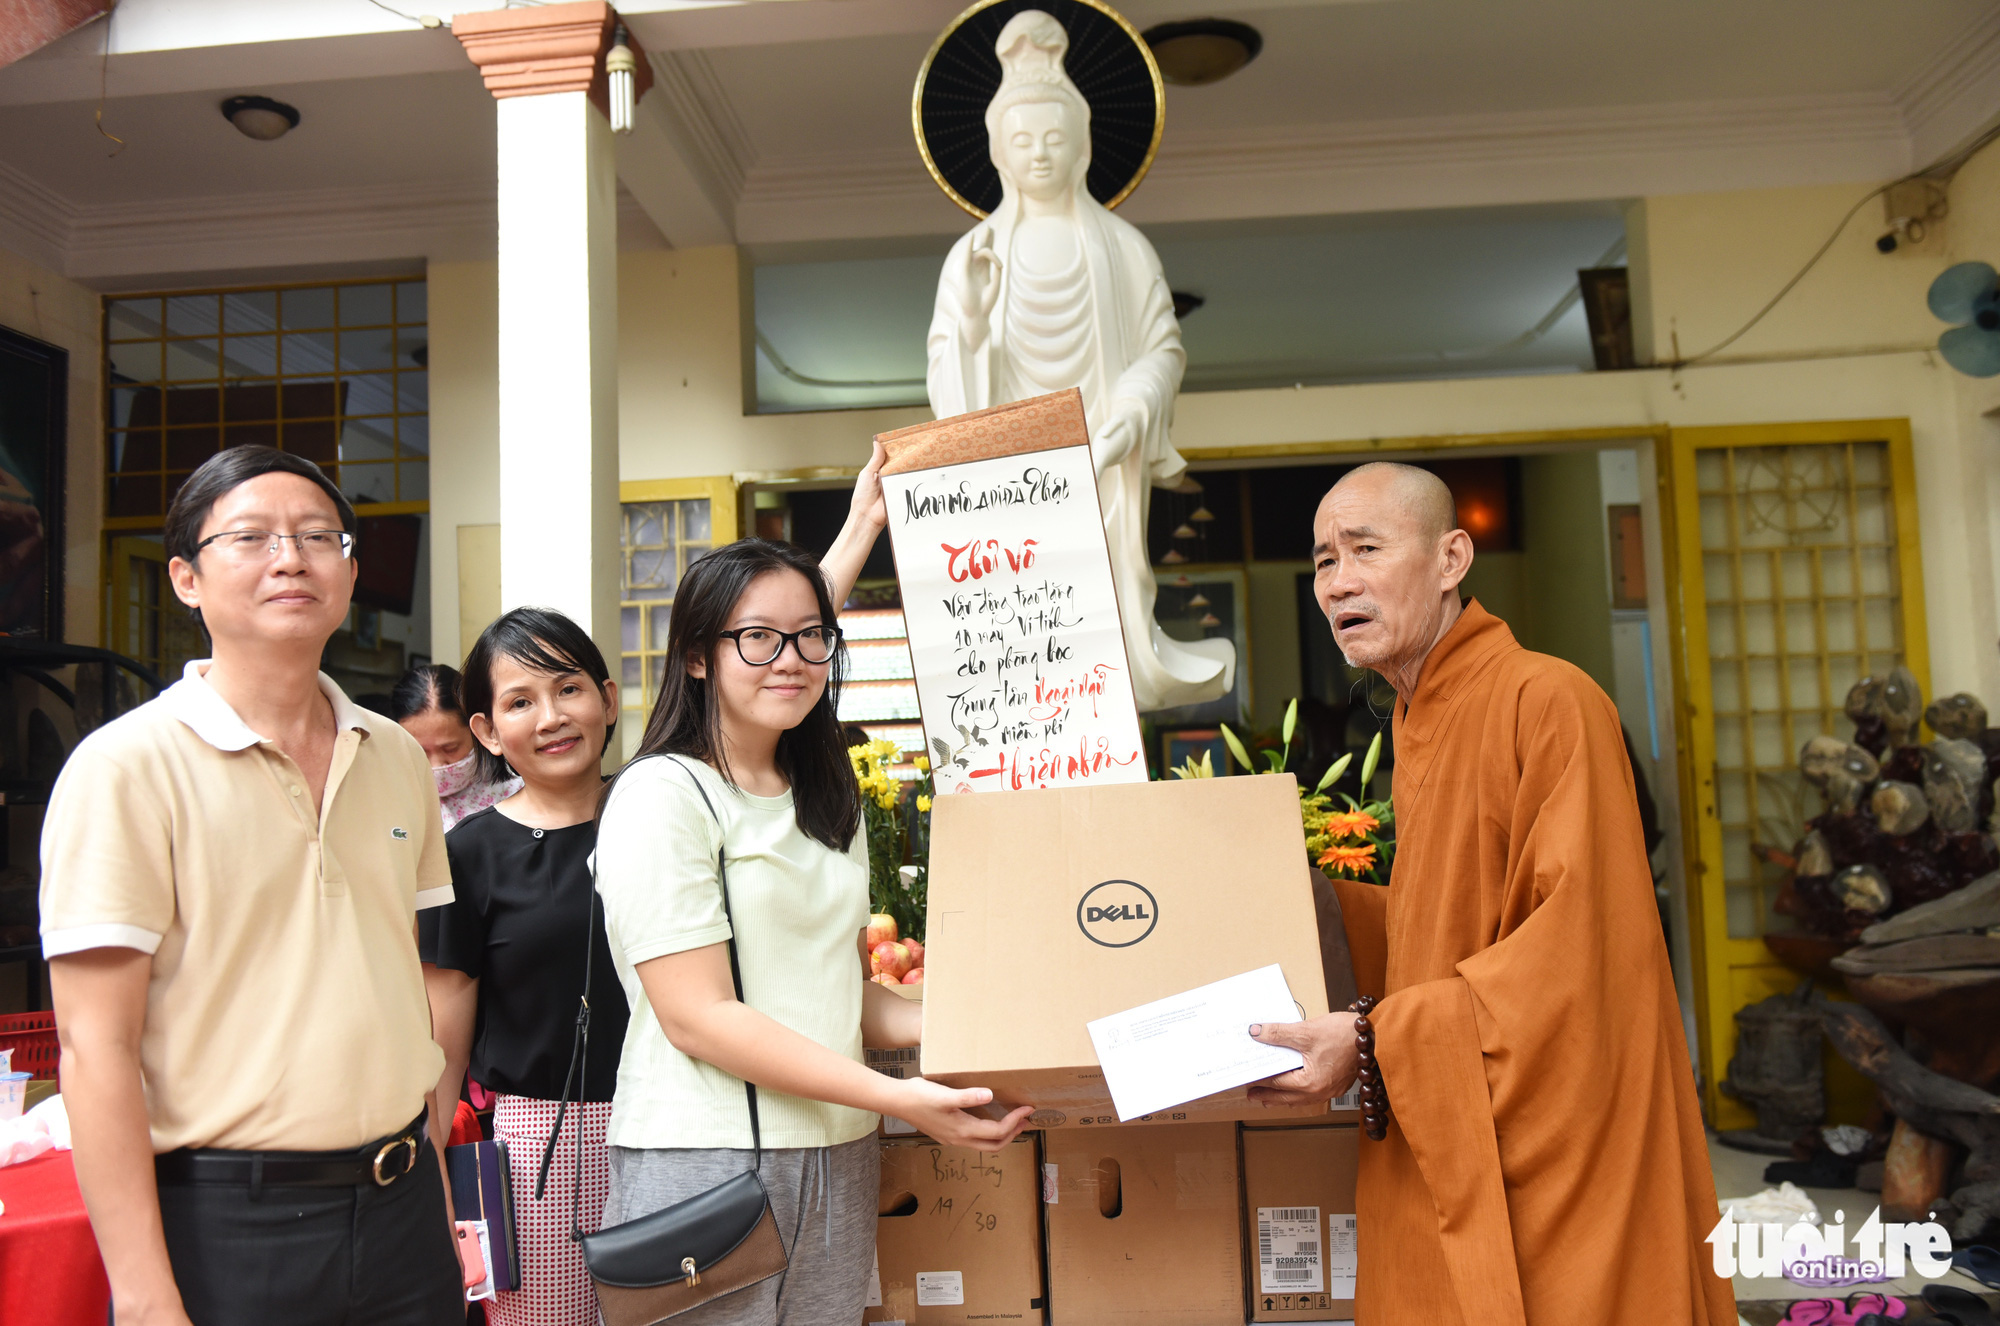 Vo Minh Thu (third left), a volunteer foreign language teacher at La Pagoda in Go Vap District, Ho Chi Minh City, donates personal computers to the pagoda to be used in language teaching, September 13, 2020. Photo: Duyen Phan / Tuoi Tre